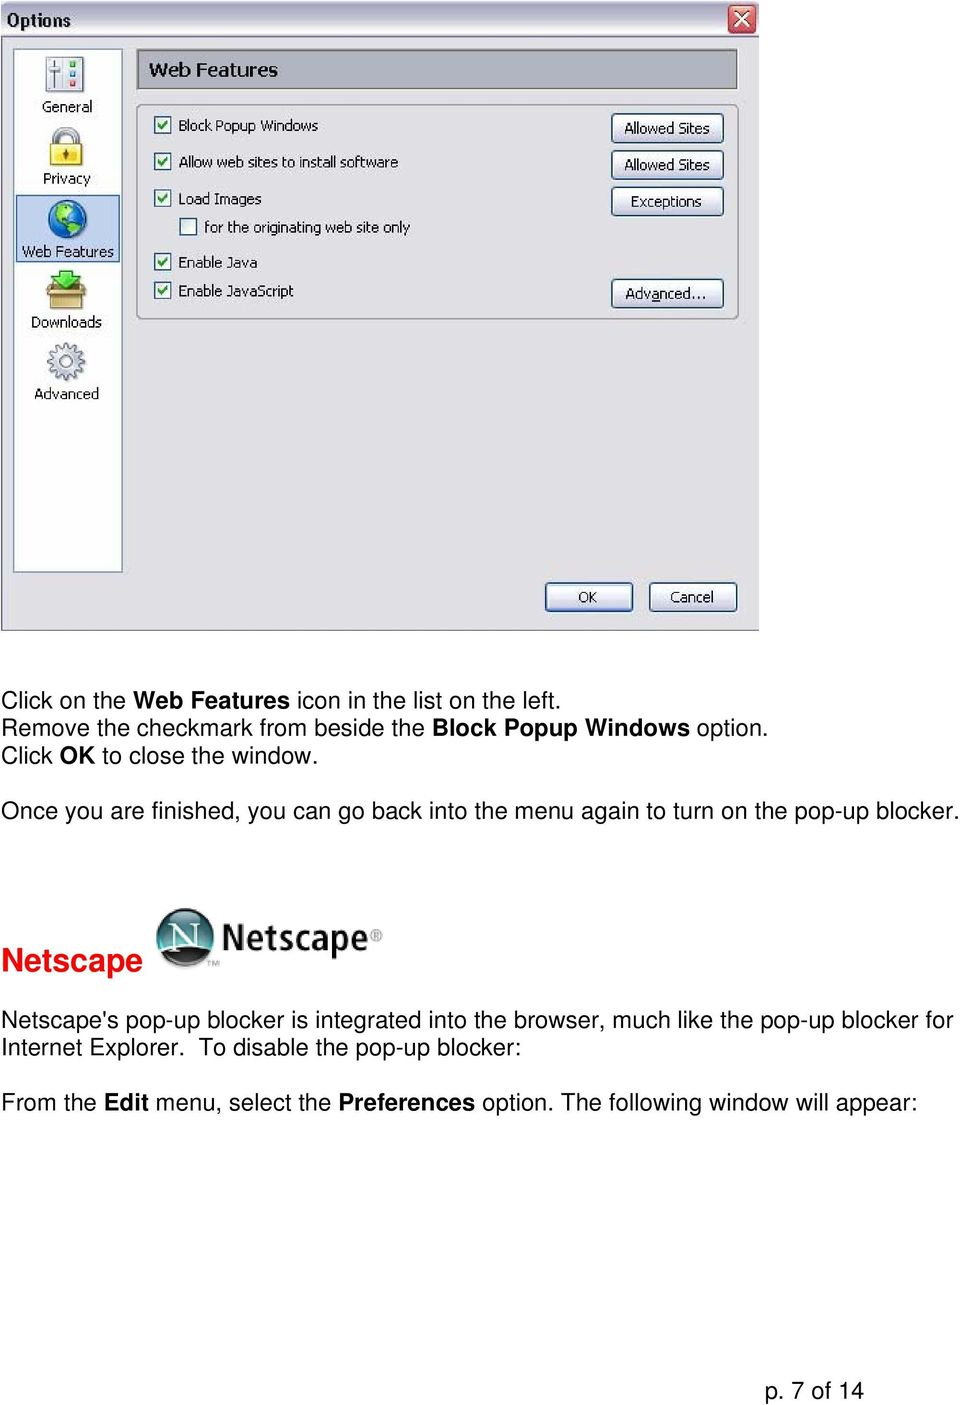 Netscape Netscape's pop-up blocker is integrated into the browser, much like the pop-up blocker for Internet Explorer.